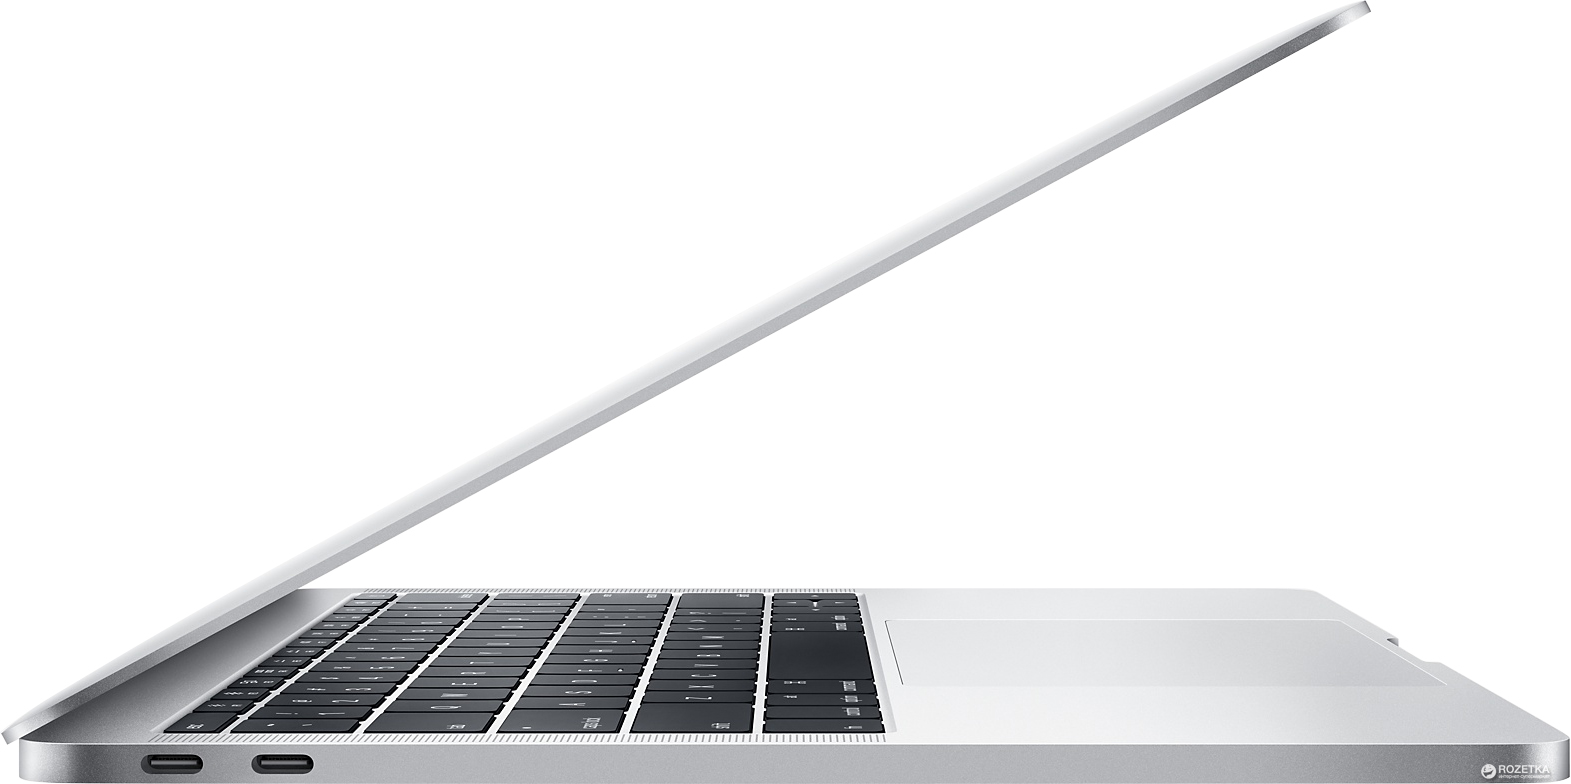 Rozetkaua Apple A1708 Macbook Pro Retina 13 Mpxu2 Mll42 Grey Silver